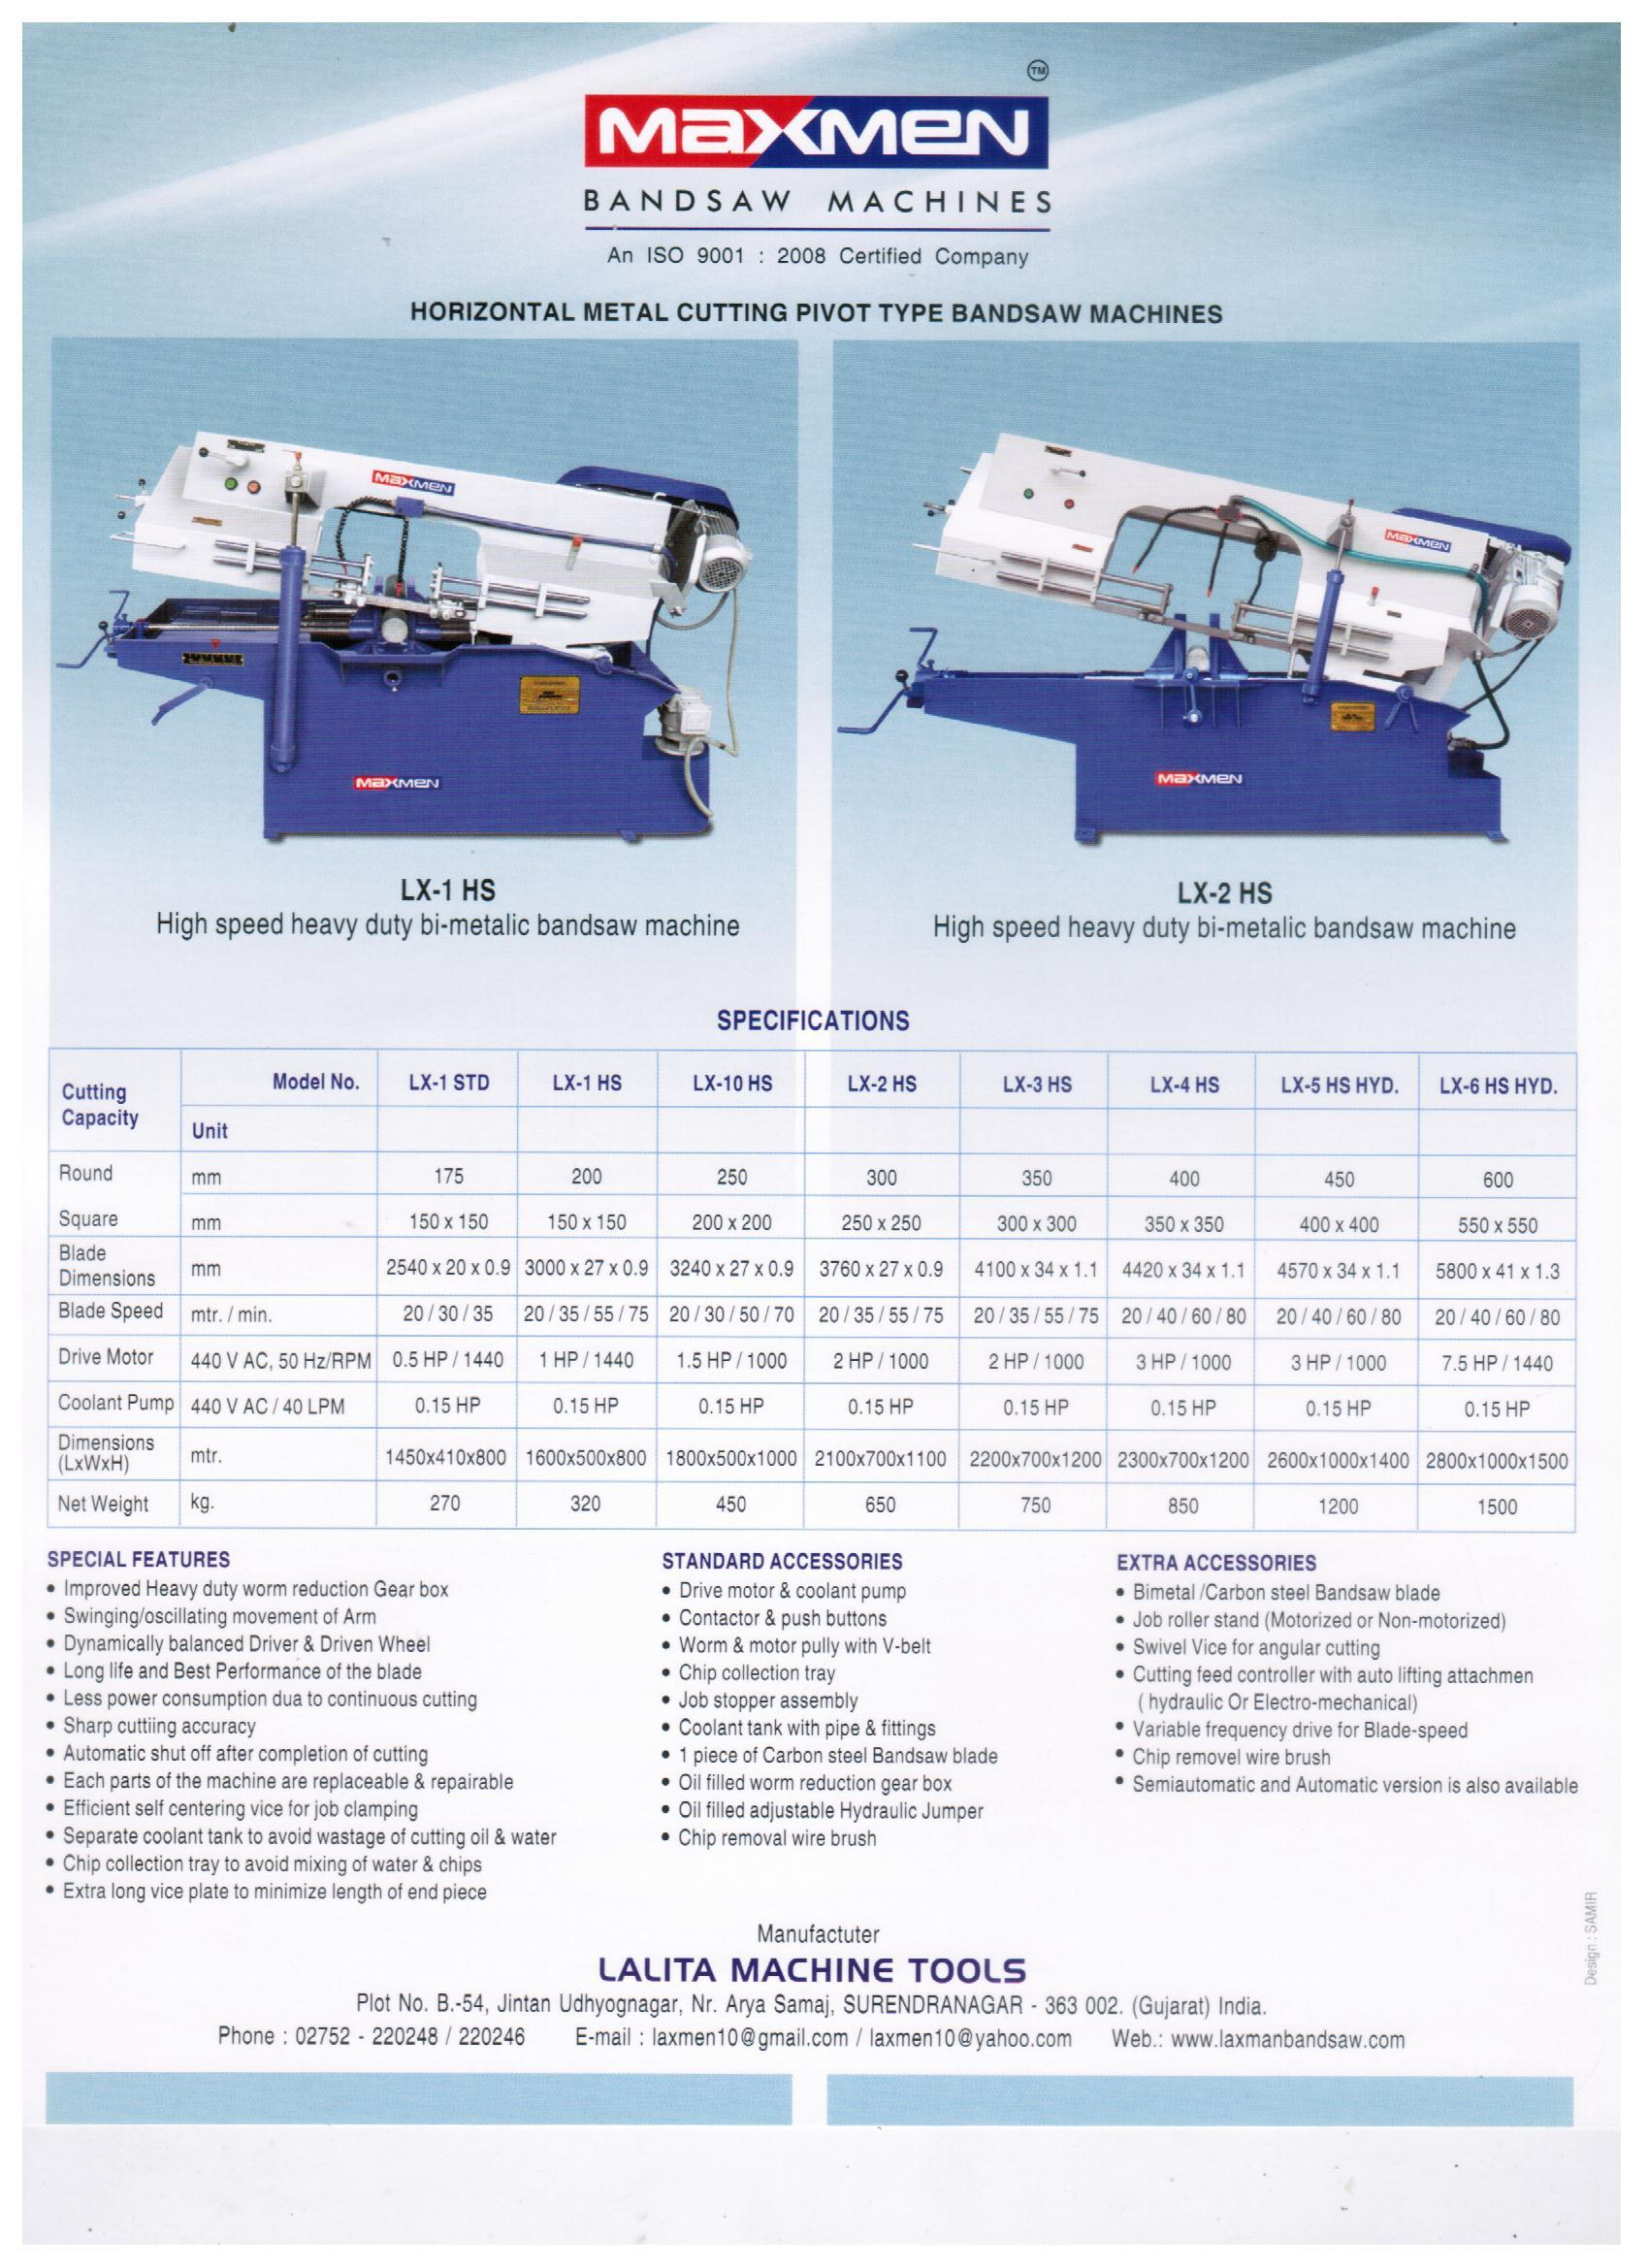 High Speed Metal Cutting Bandsaw Machines